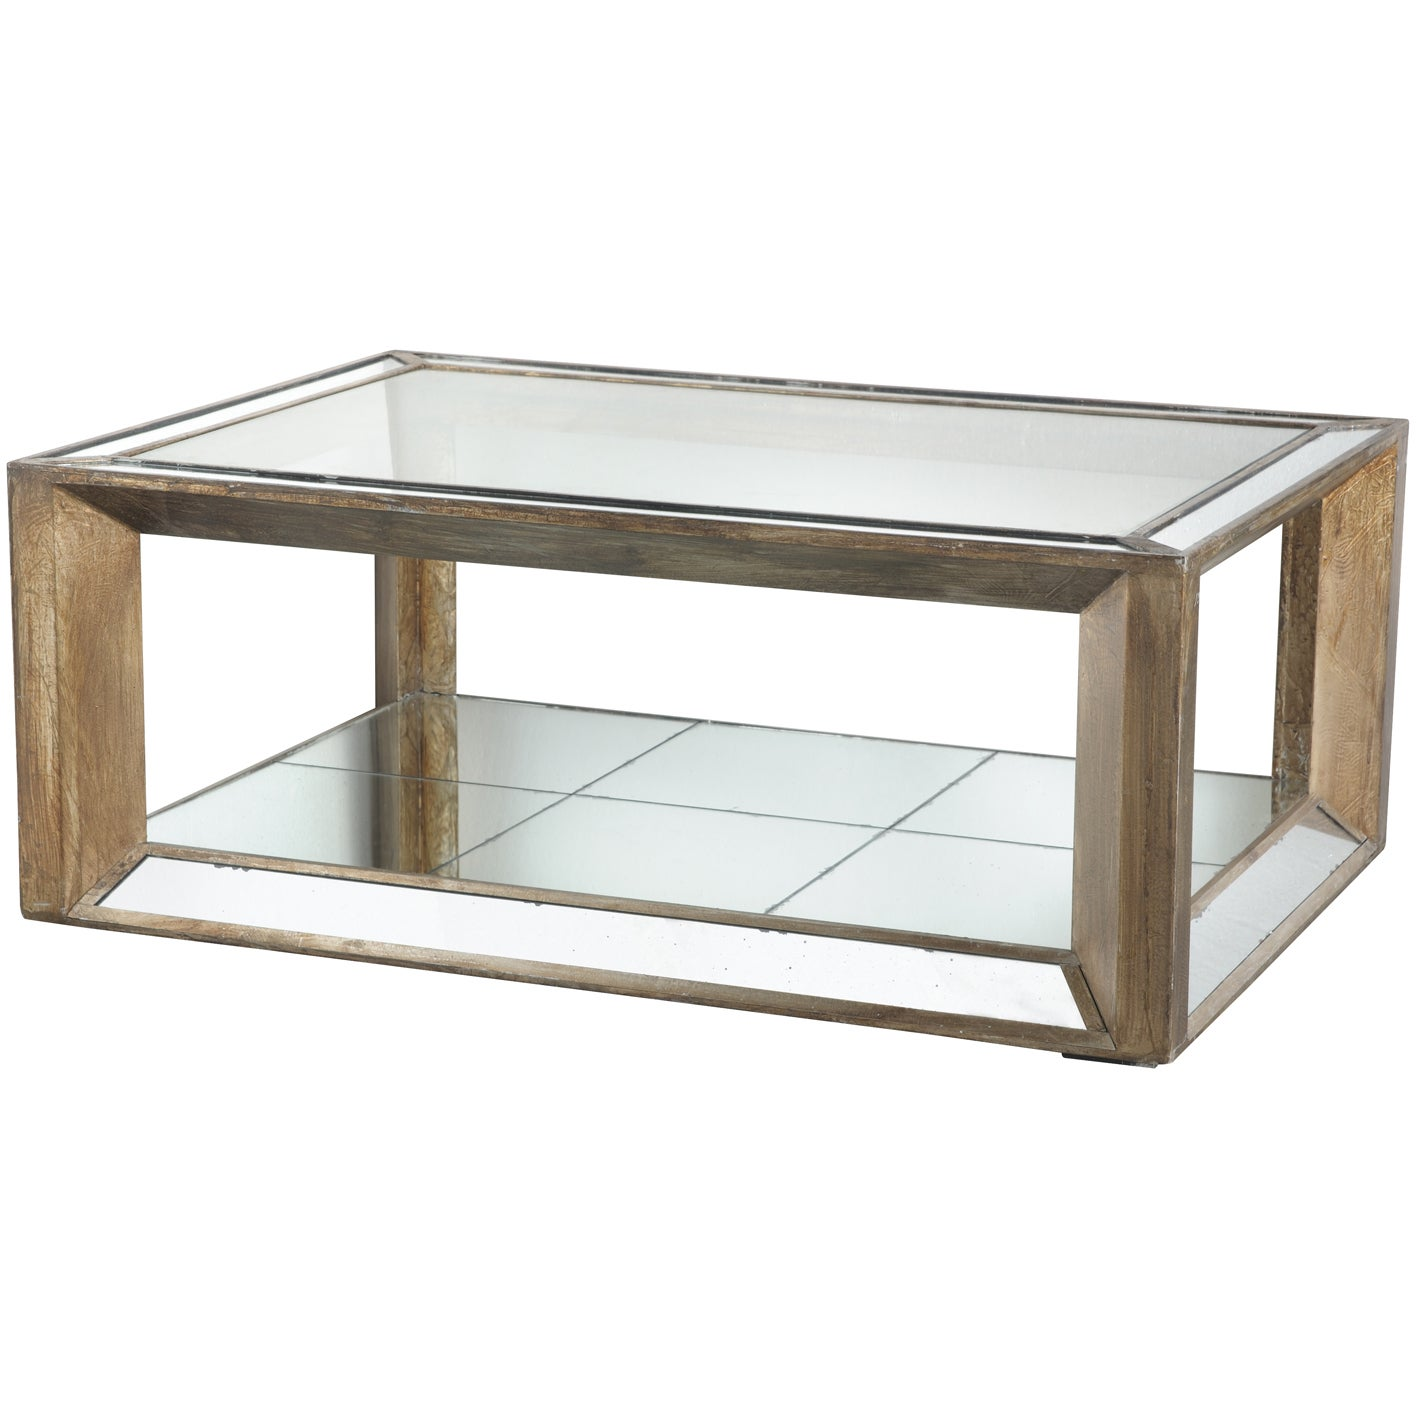 Picture of: Julia Wood Glass Mirrored Coffee Table Overstock 9804191